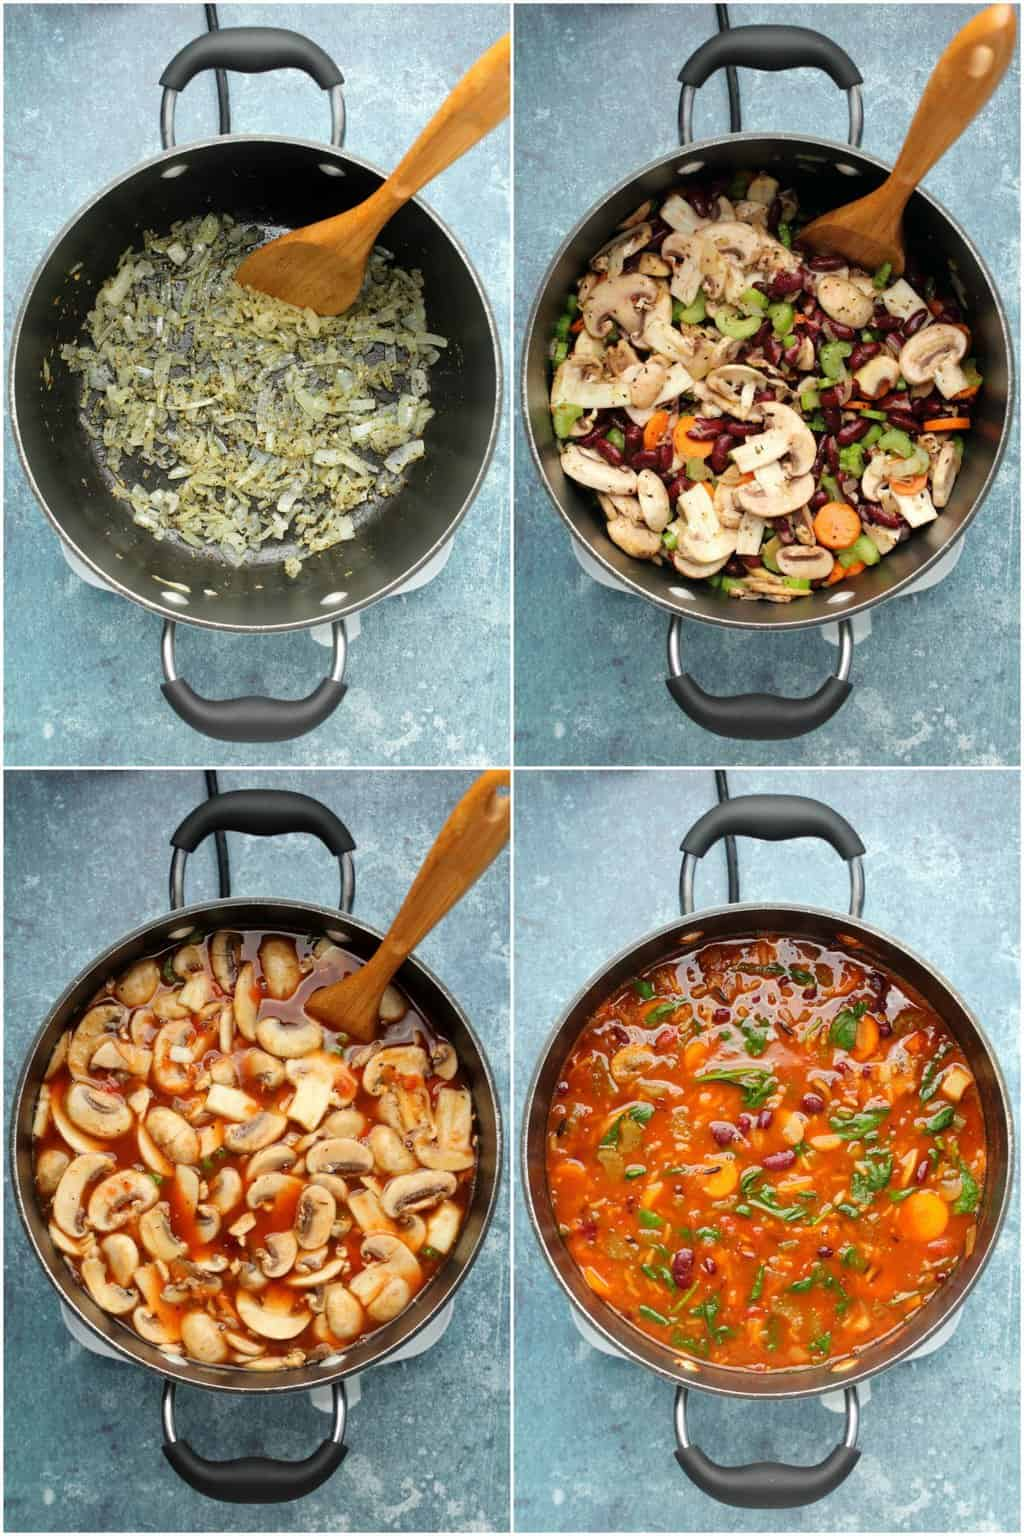 Step by step process photo collage of making vegan minestrone soup.